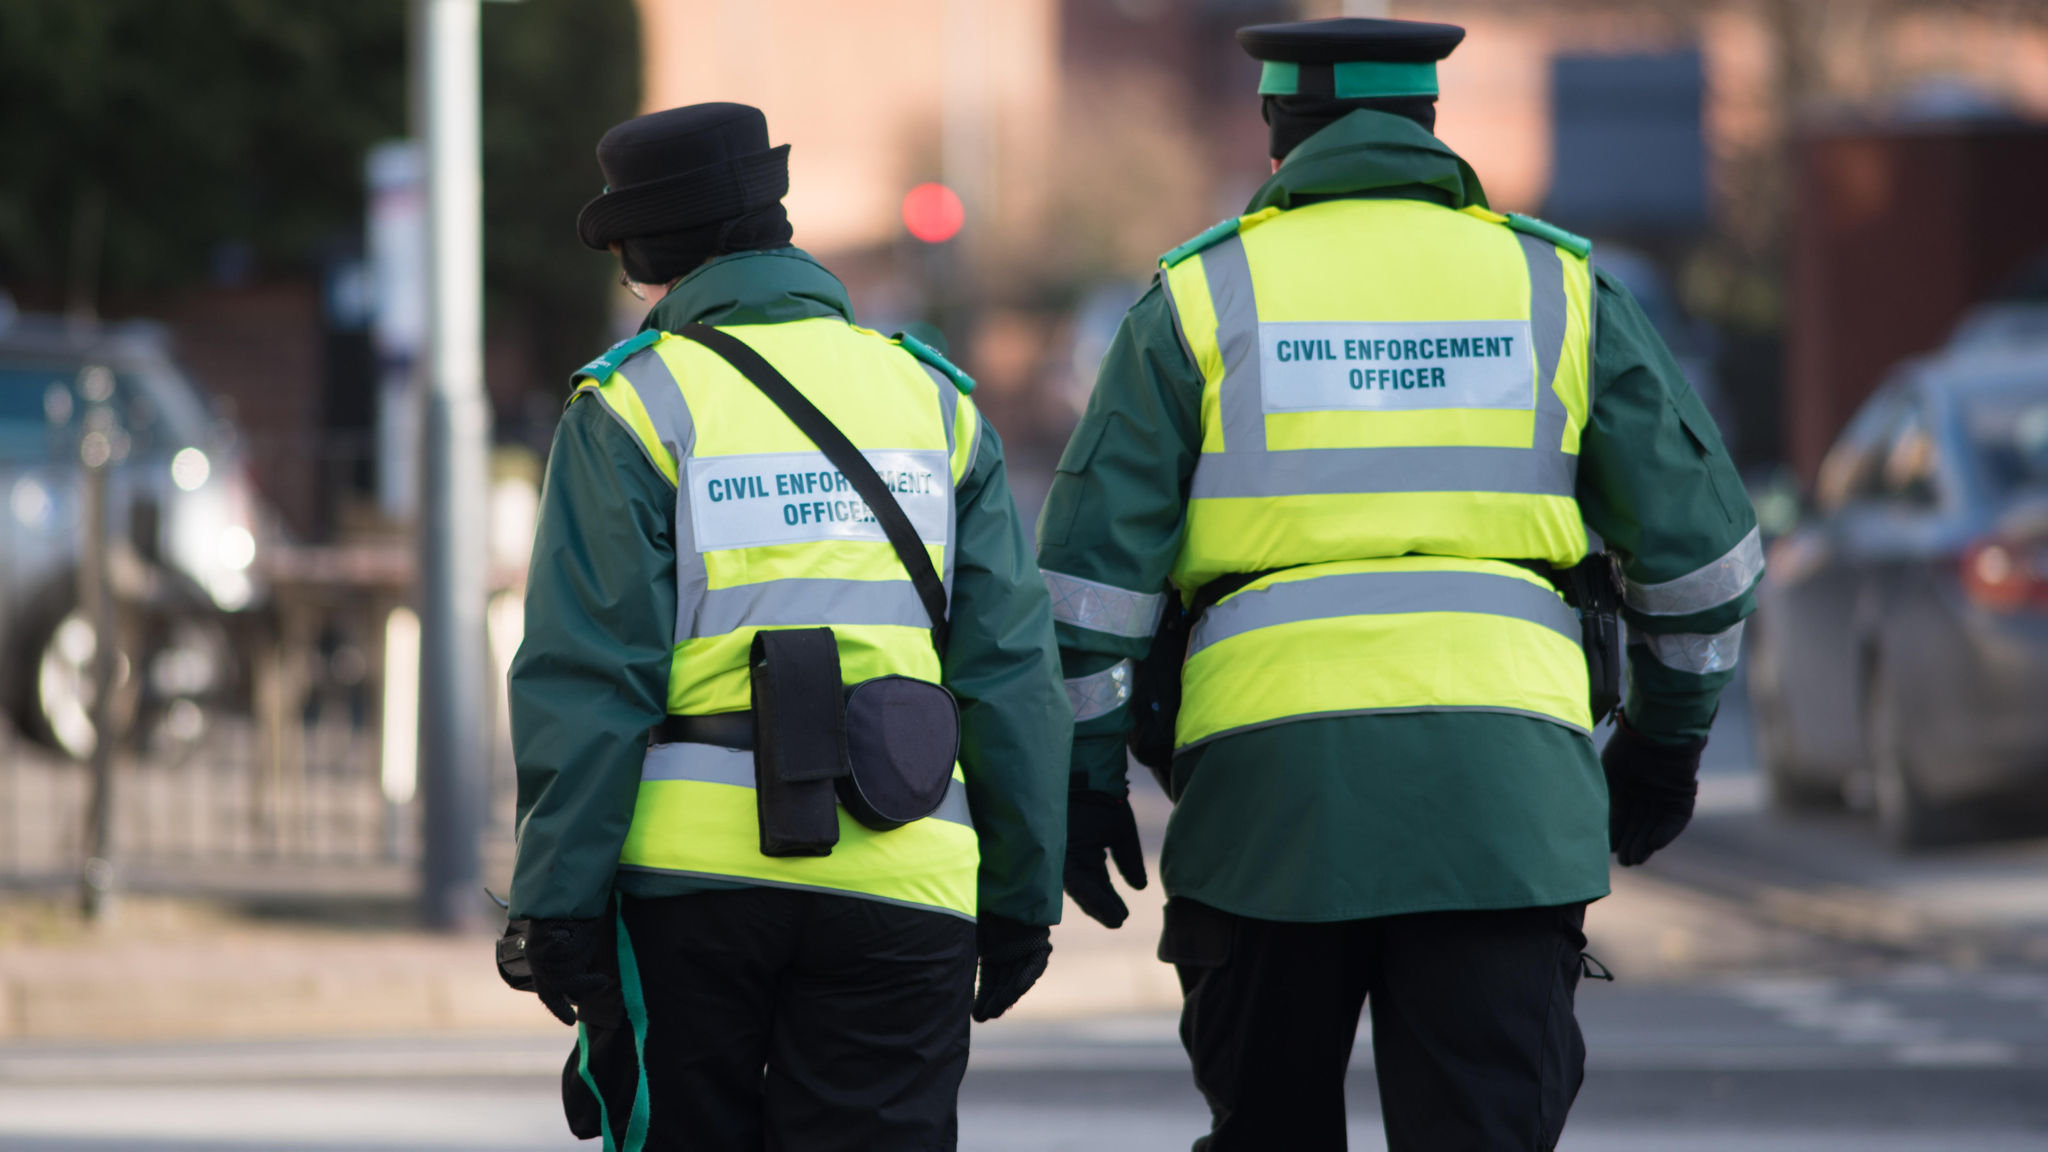 Outsourcing Of Uk Civil Enforcement Work Causes Concern Financial Times